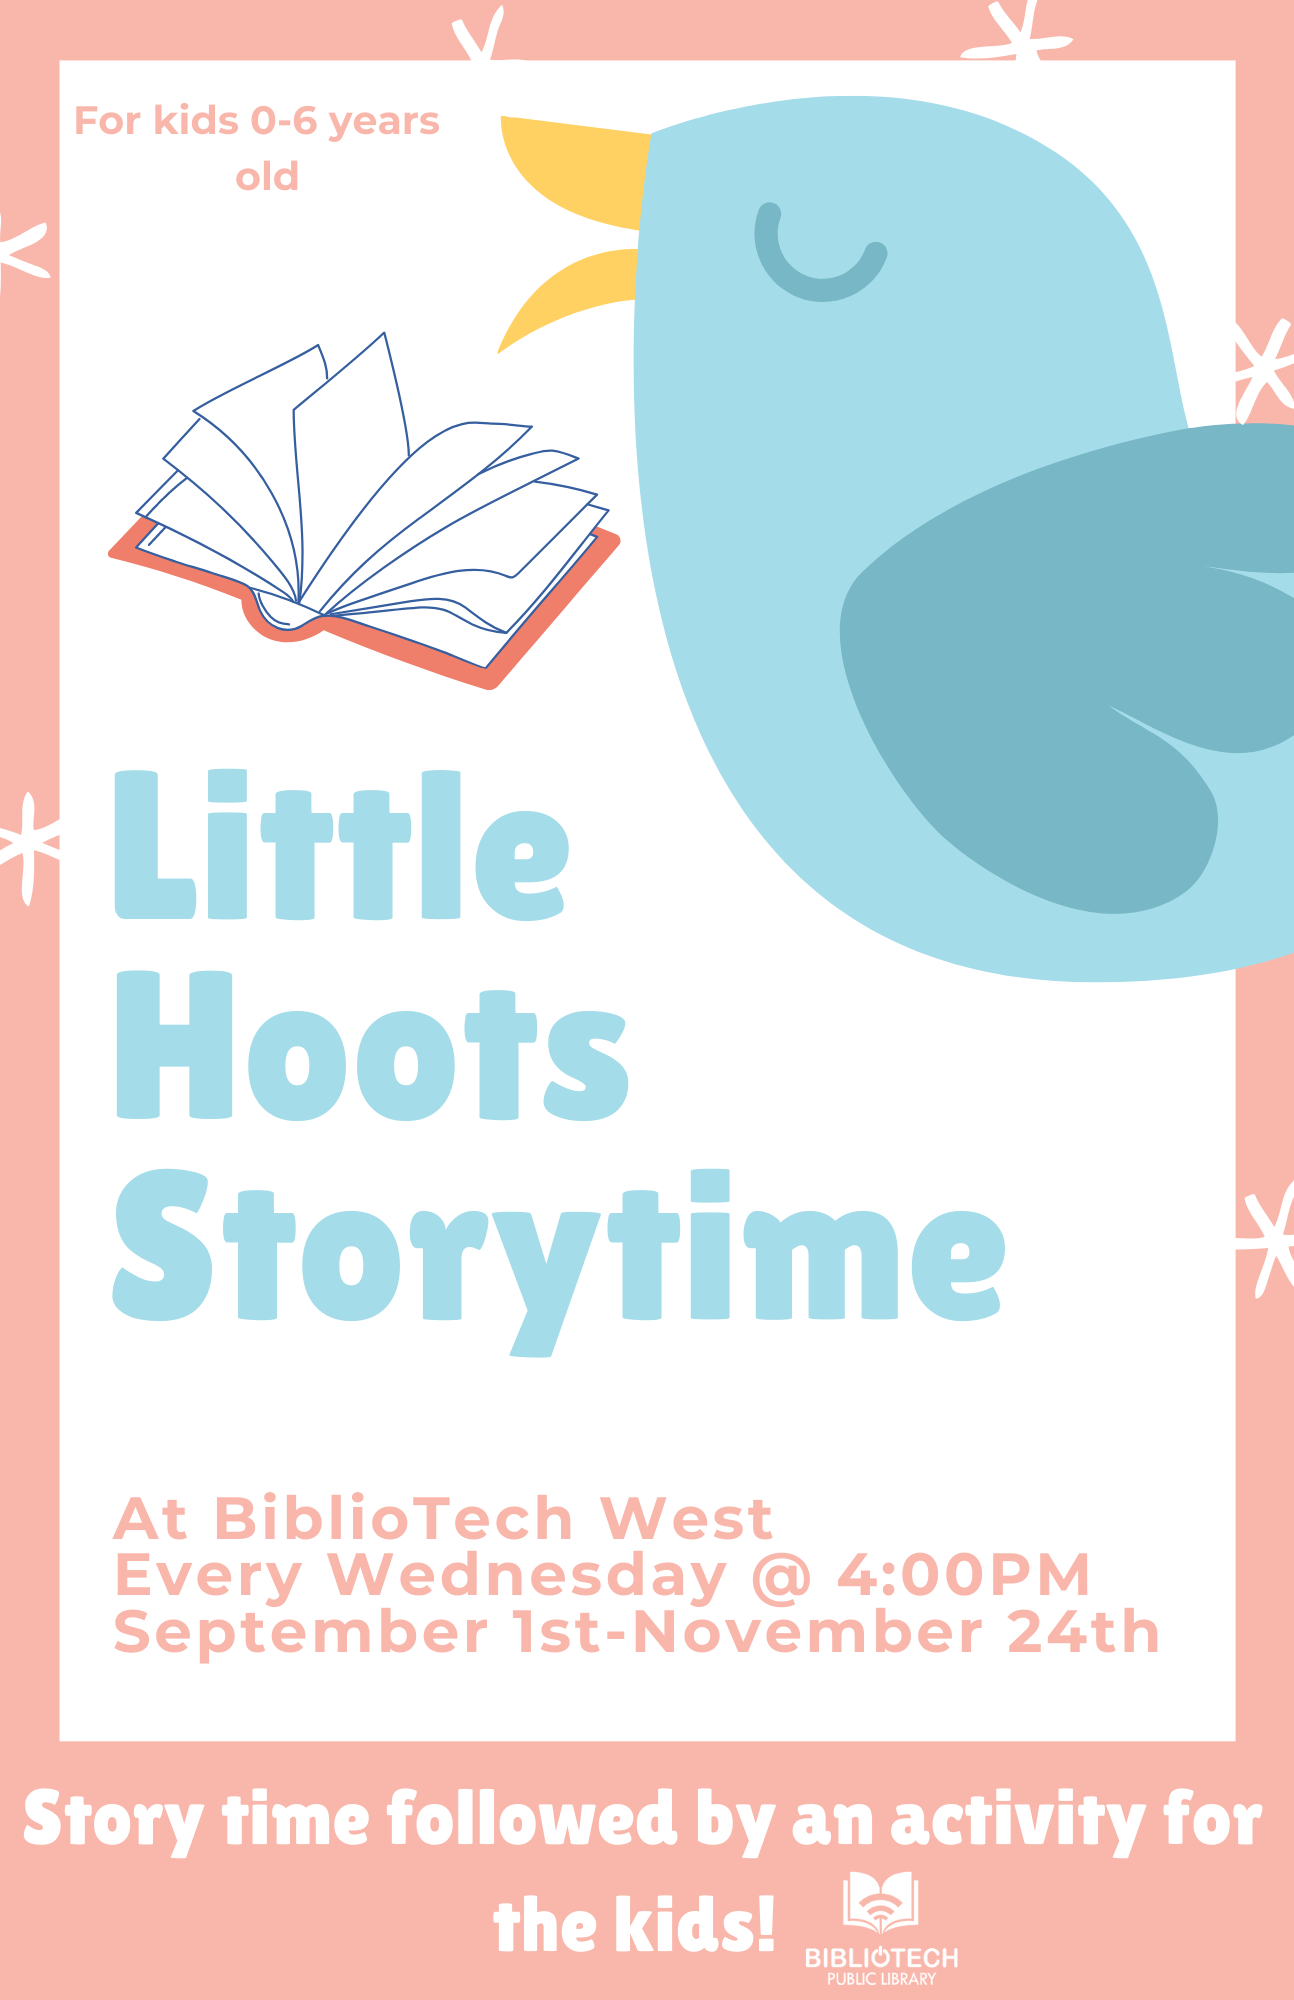 Litte Hoots Story Time - West Branch